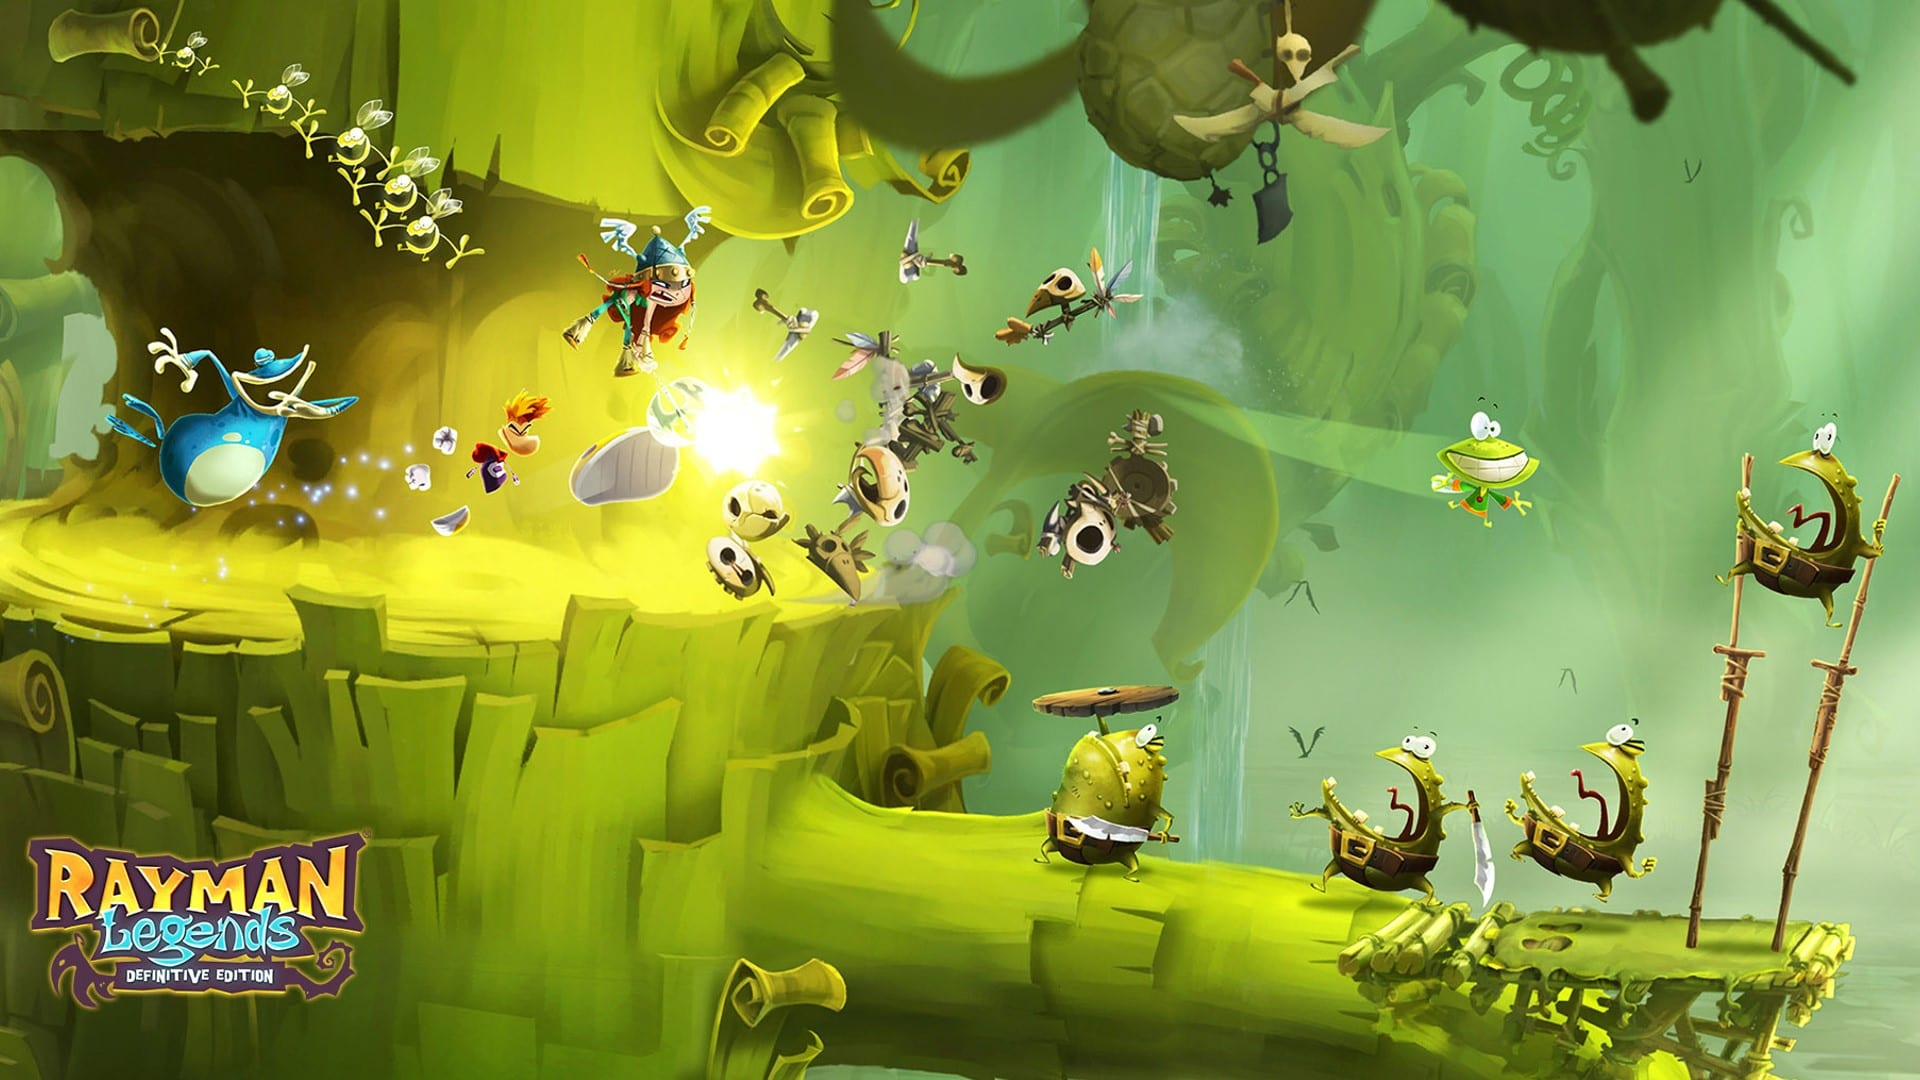 """Rayman Legends: Definitive Edition Coming to Nintendo Switch September 12, Demo Coming """"Later this Summer"""""""